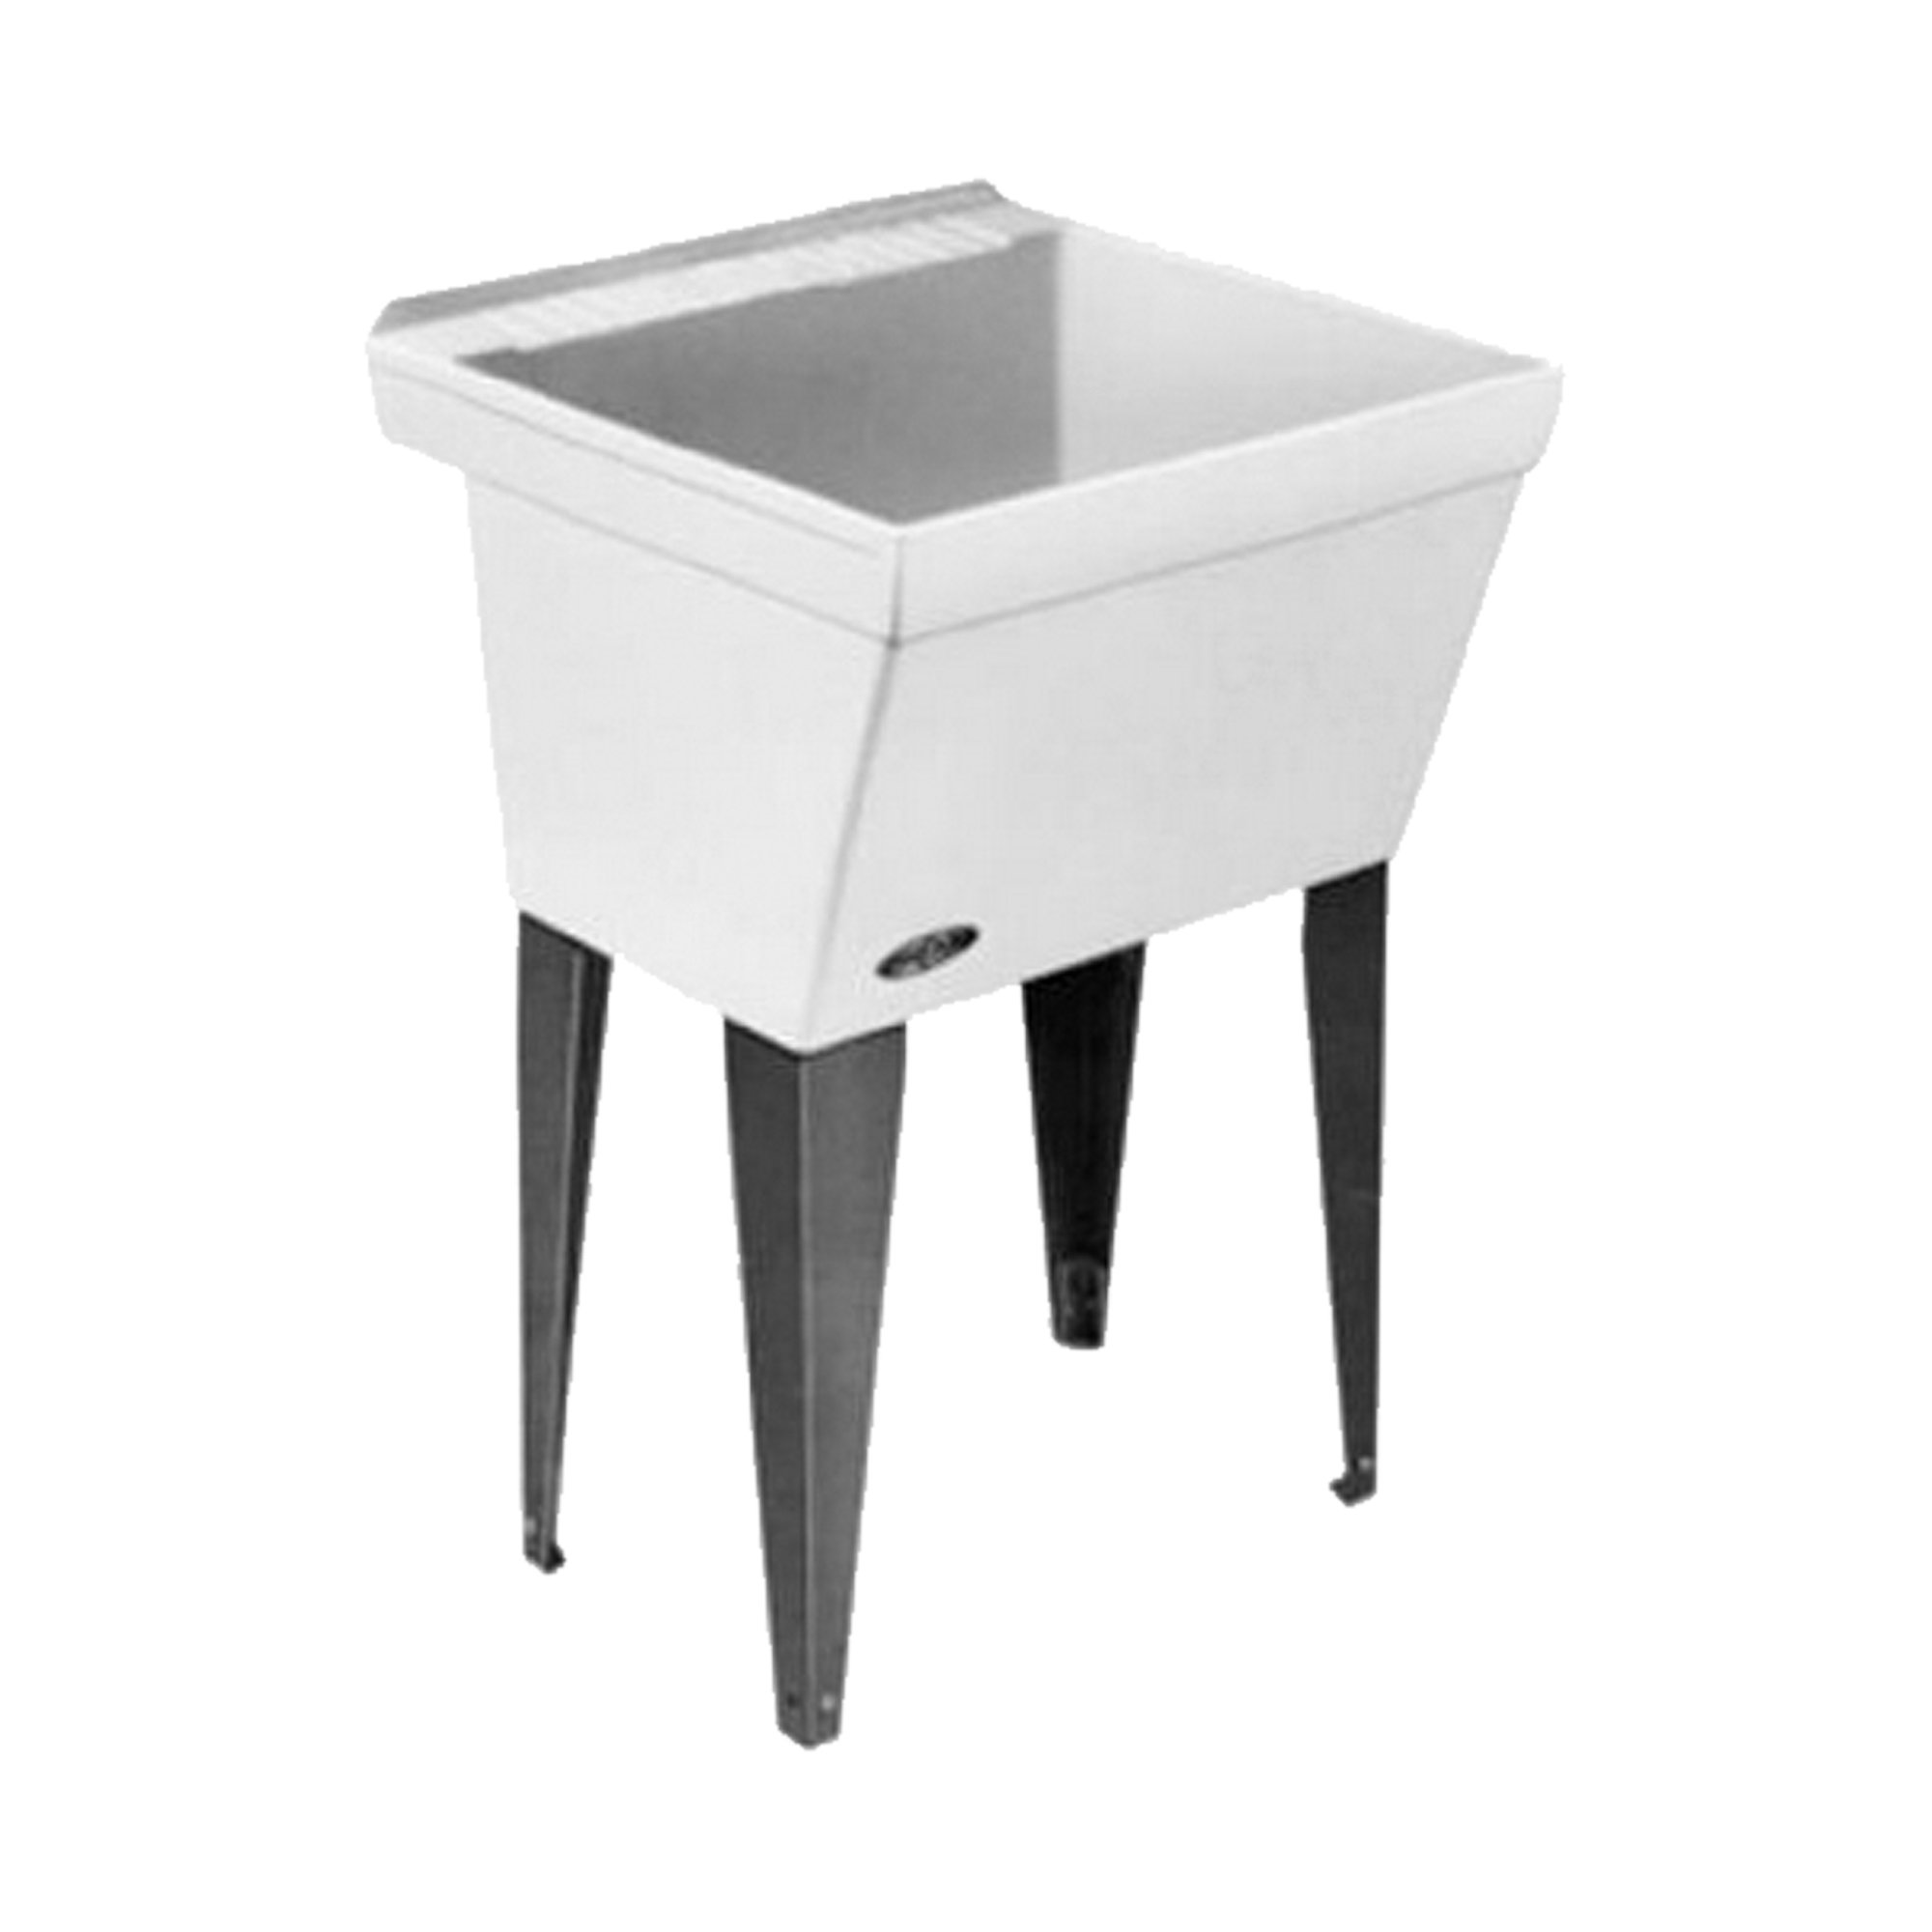 Mustee 17F Utilatub Laundry Tub Floor Mount, 23.5-Inch x 23-Inch, White by Mustee